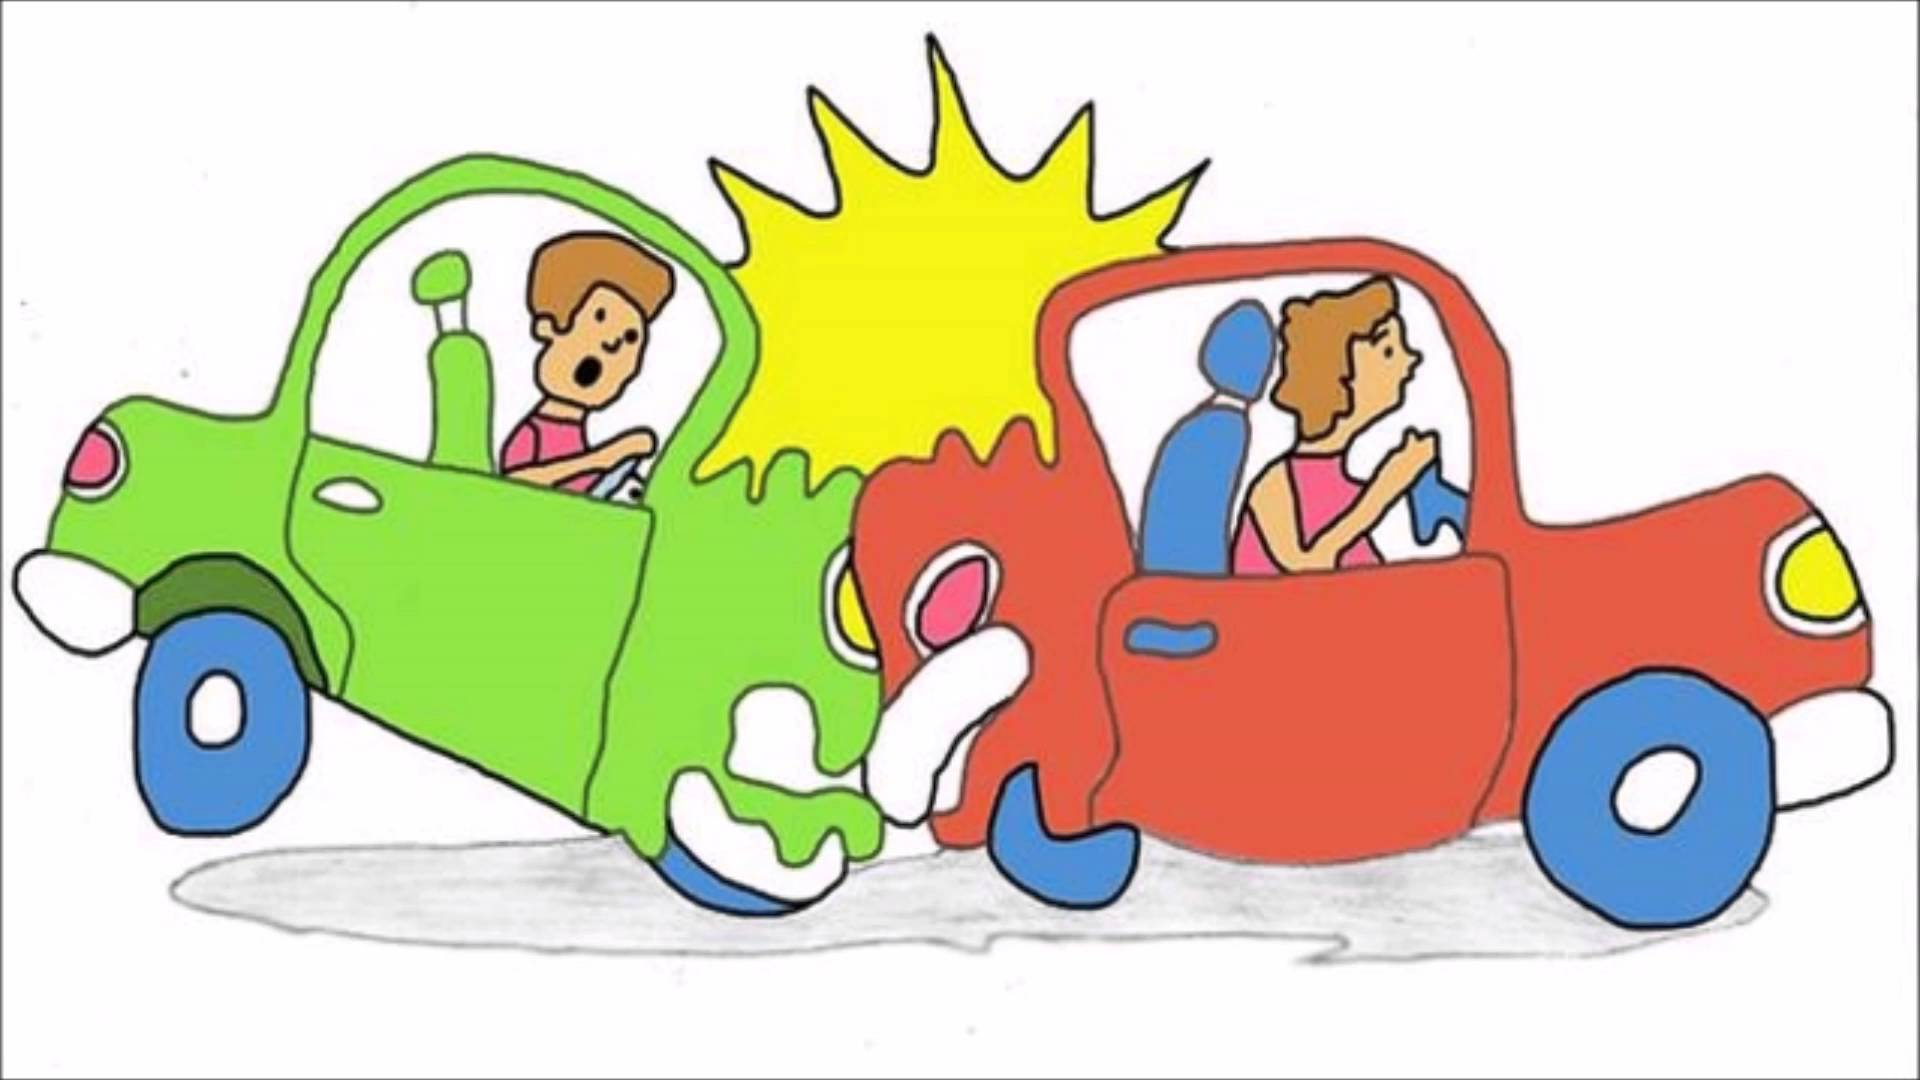 Car wreck green clipart banner Car Crash Cartoon Pictures Group with 20+ items banner